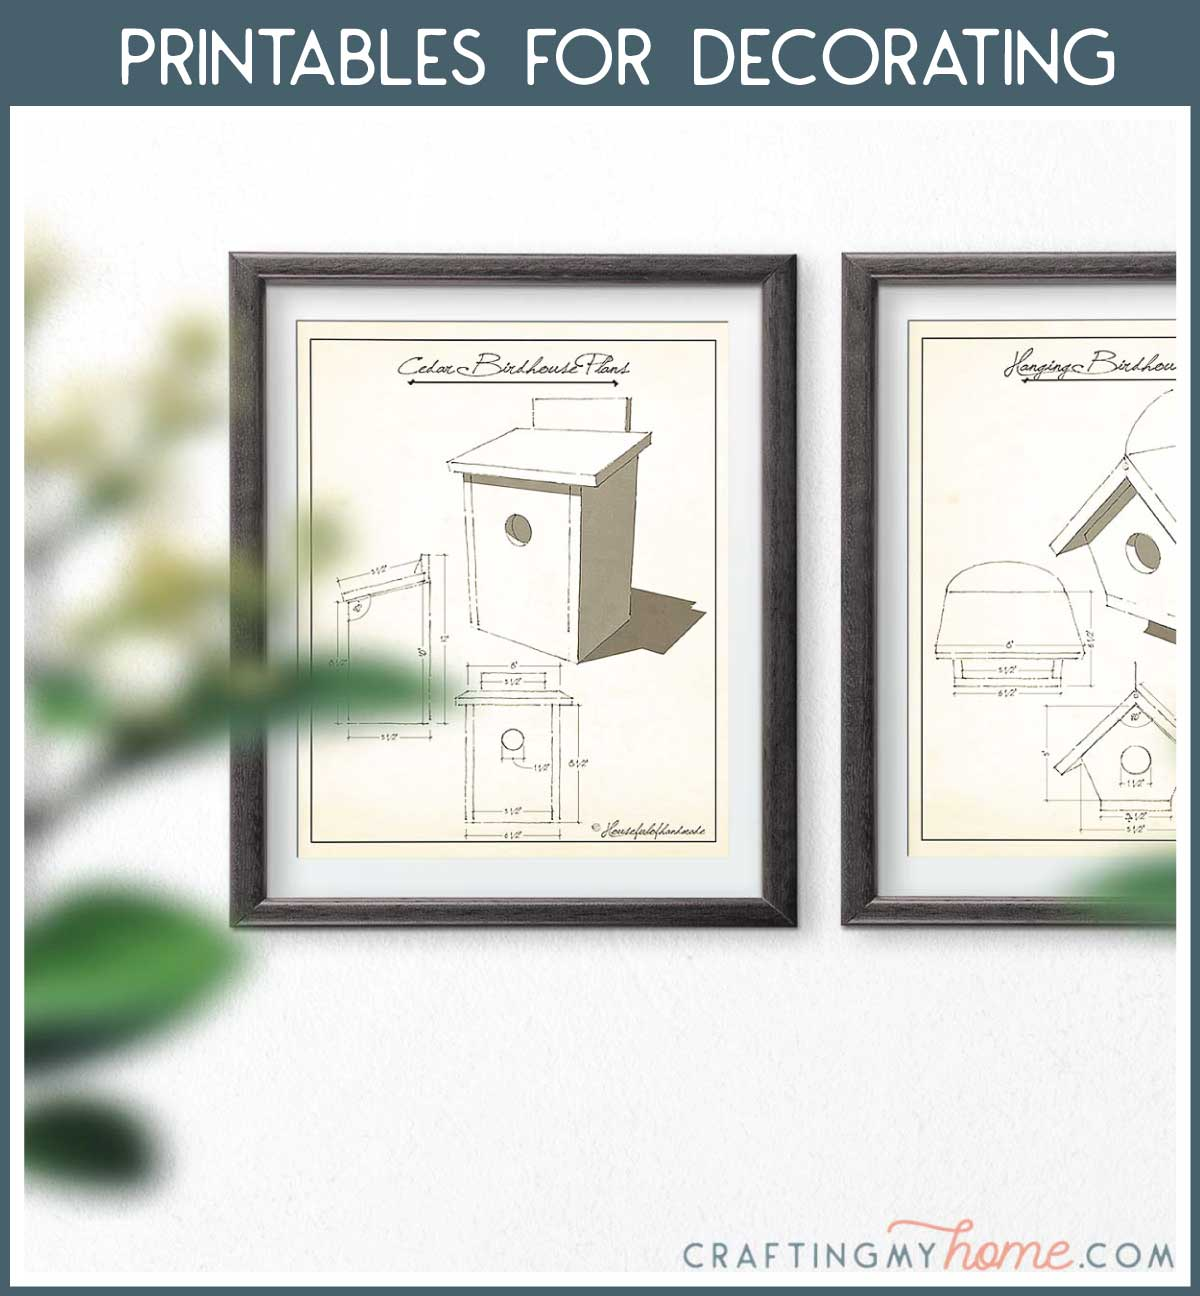 Birdhouse sketch printable art in frames hanging on the wall with a navy box around it and white text: Printables for Decorating